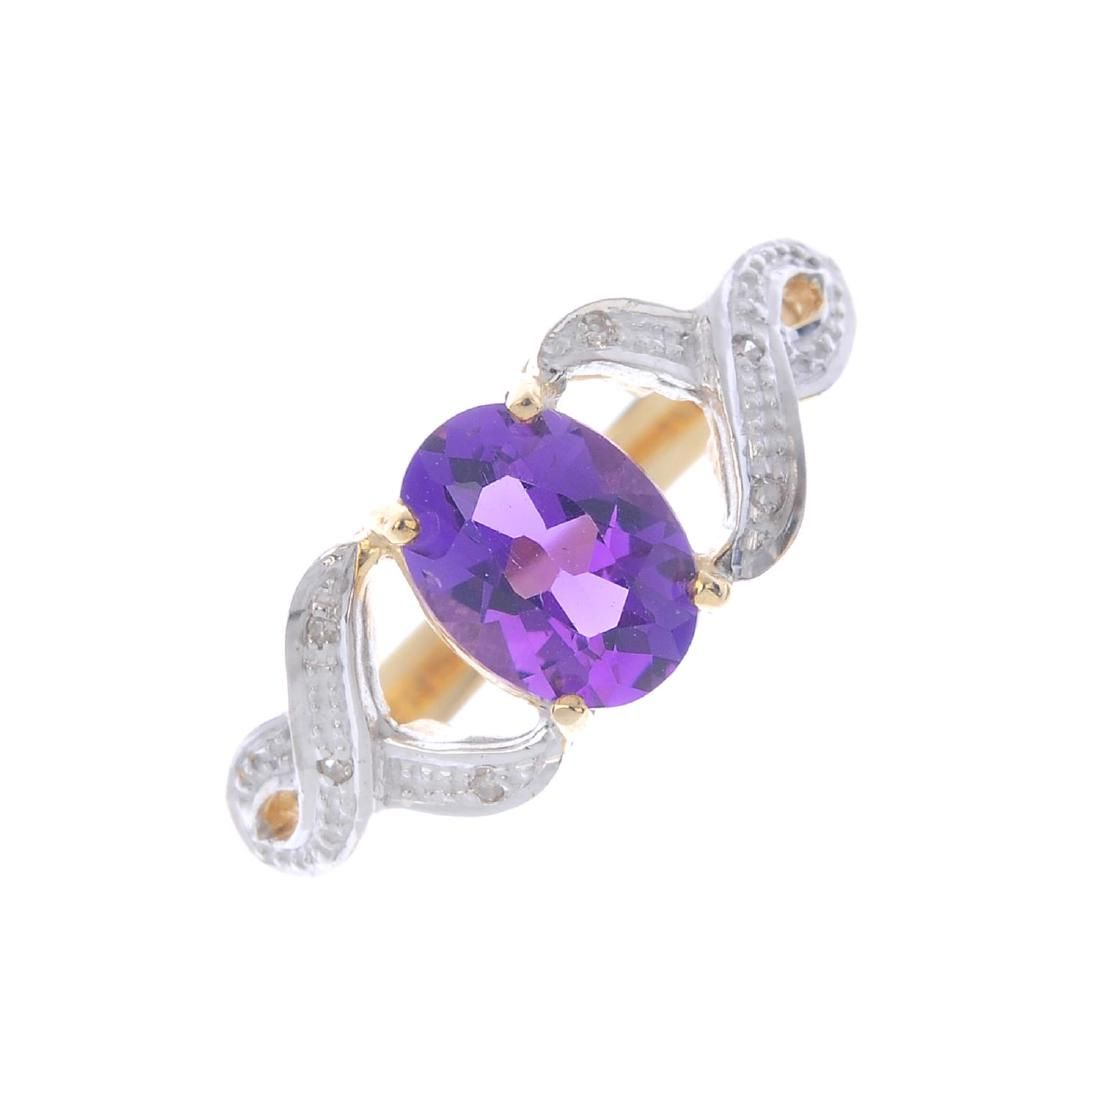 A 9ct gold amethyst single-stone ring. The oval-shape